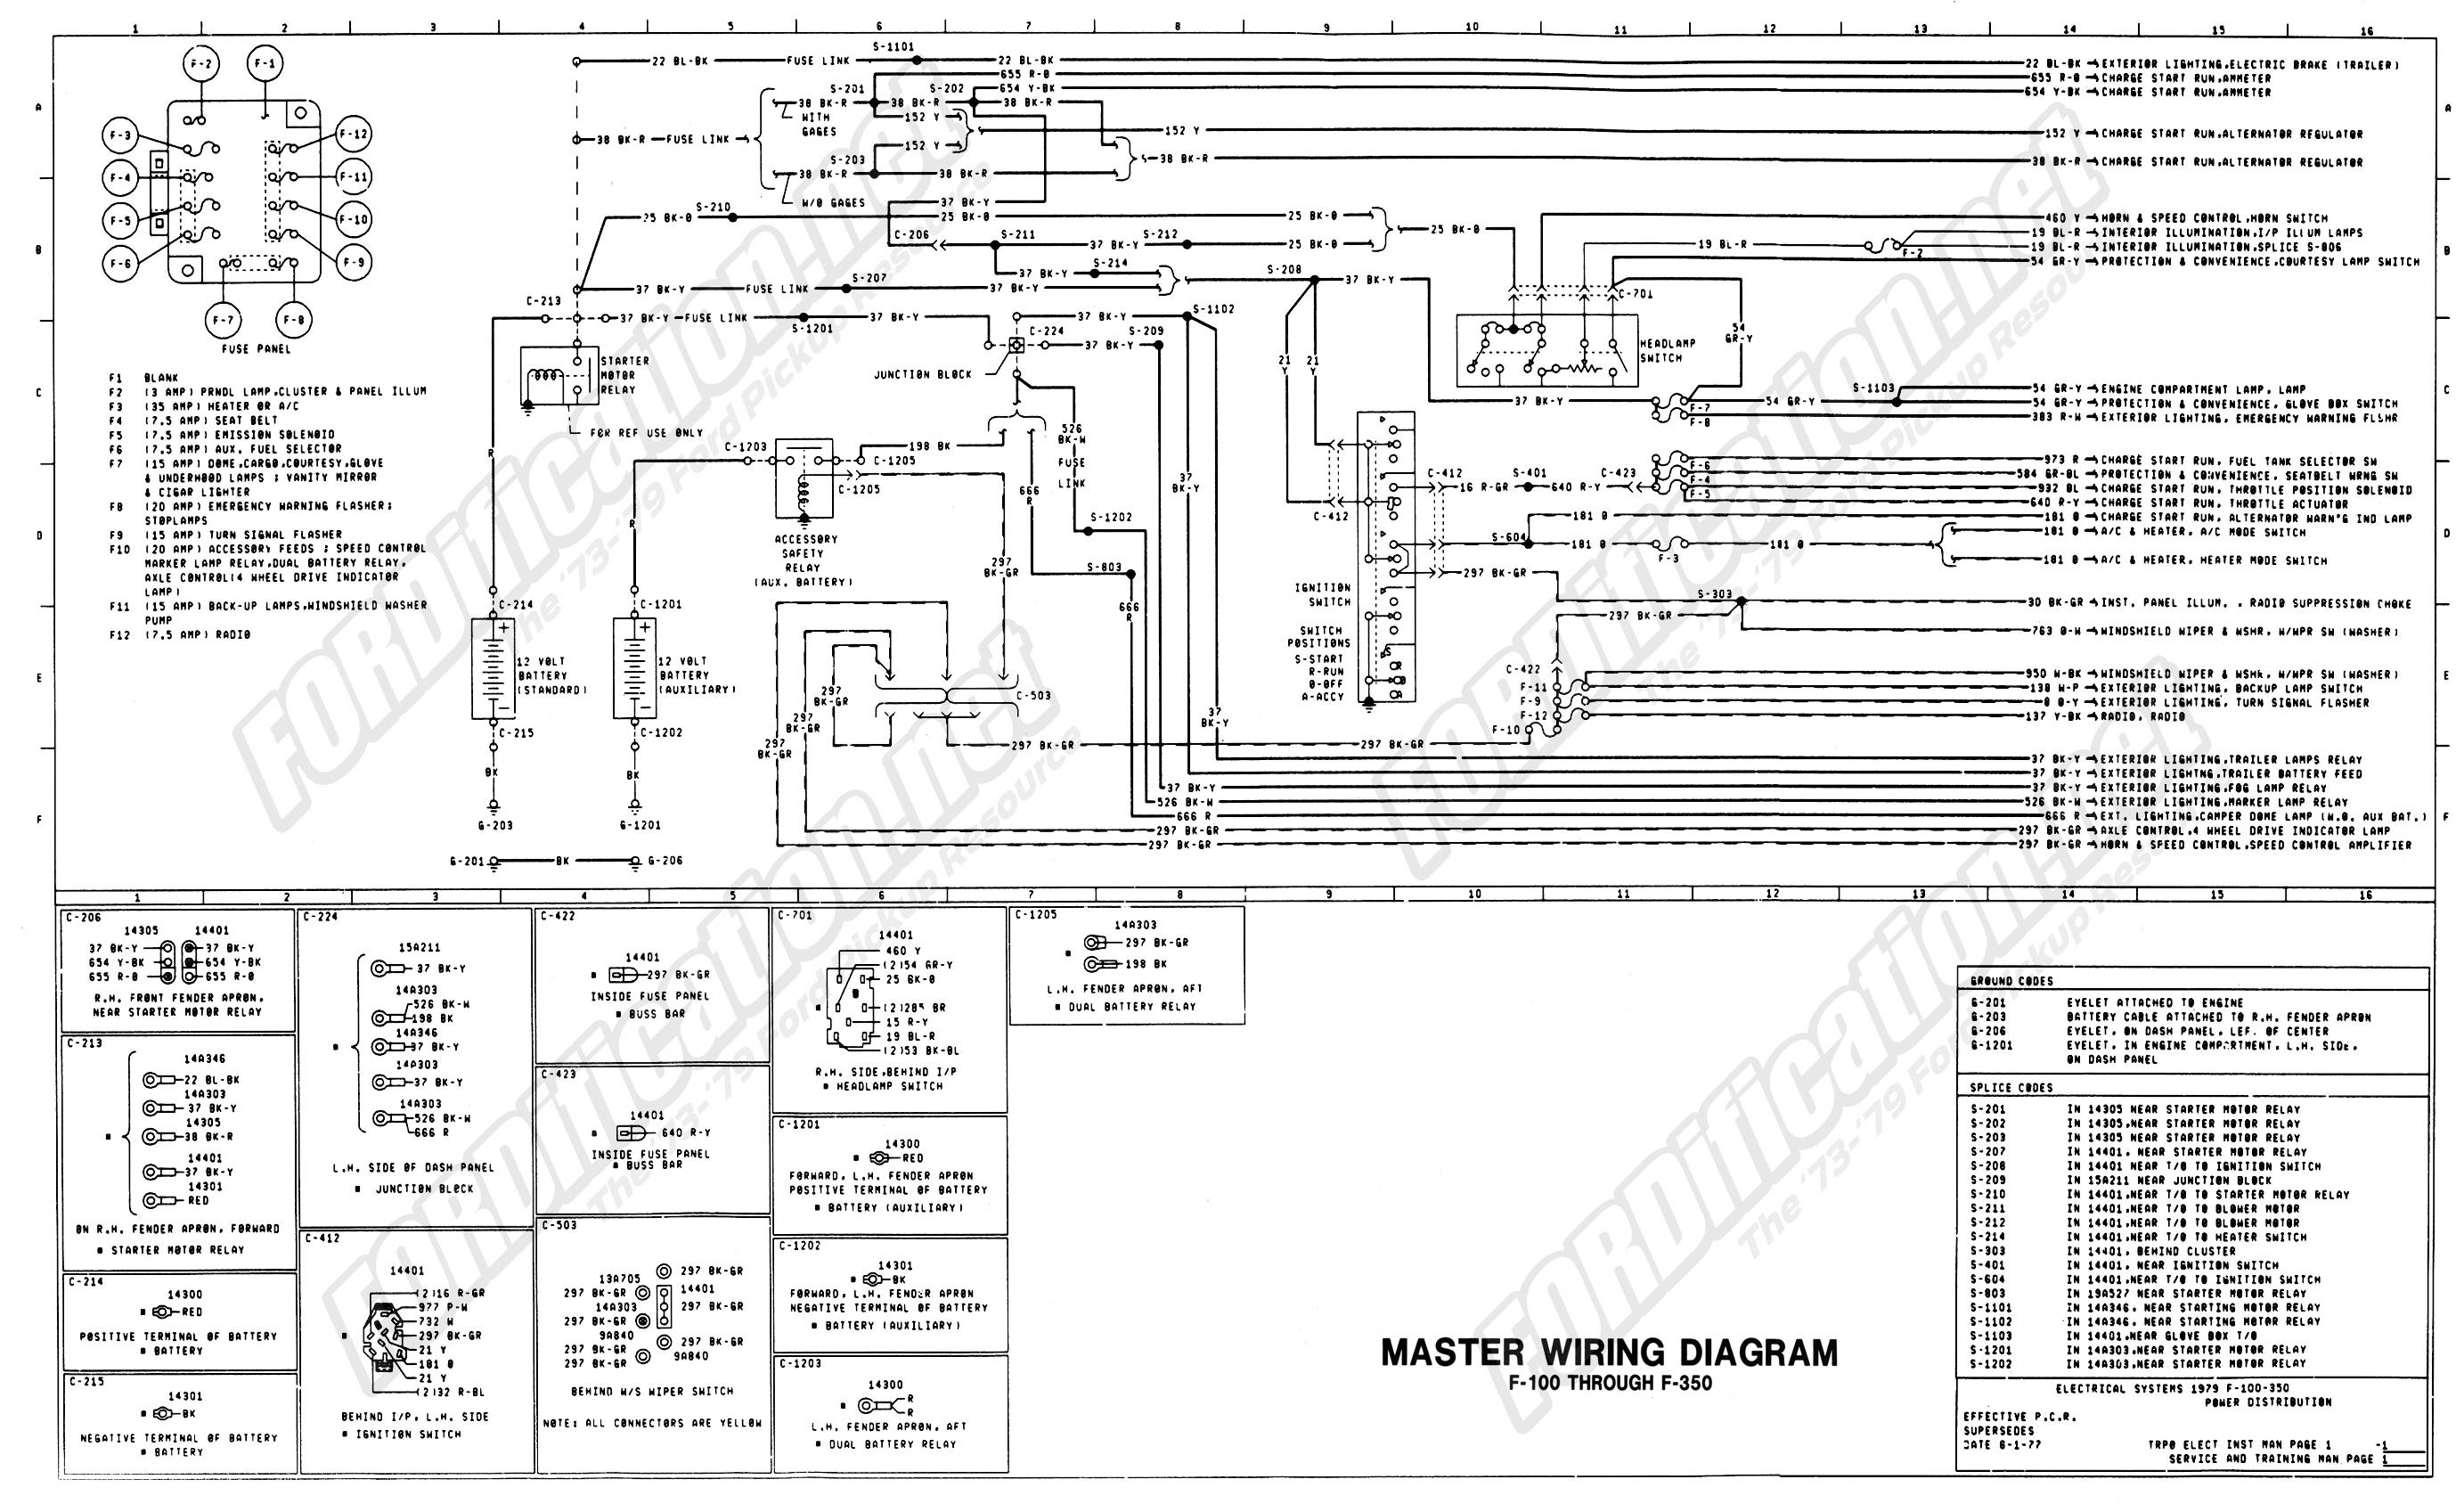 ford ignition switch wiring diagram wiring diagram image 1989 ford ignition switch wiring diagram wiring 79master 1of9 1973 1979 ford truck wiring diagrams & schematics fordification from ford ignition switch